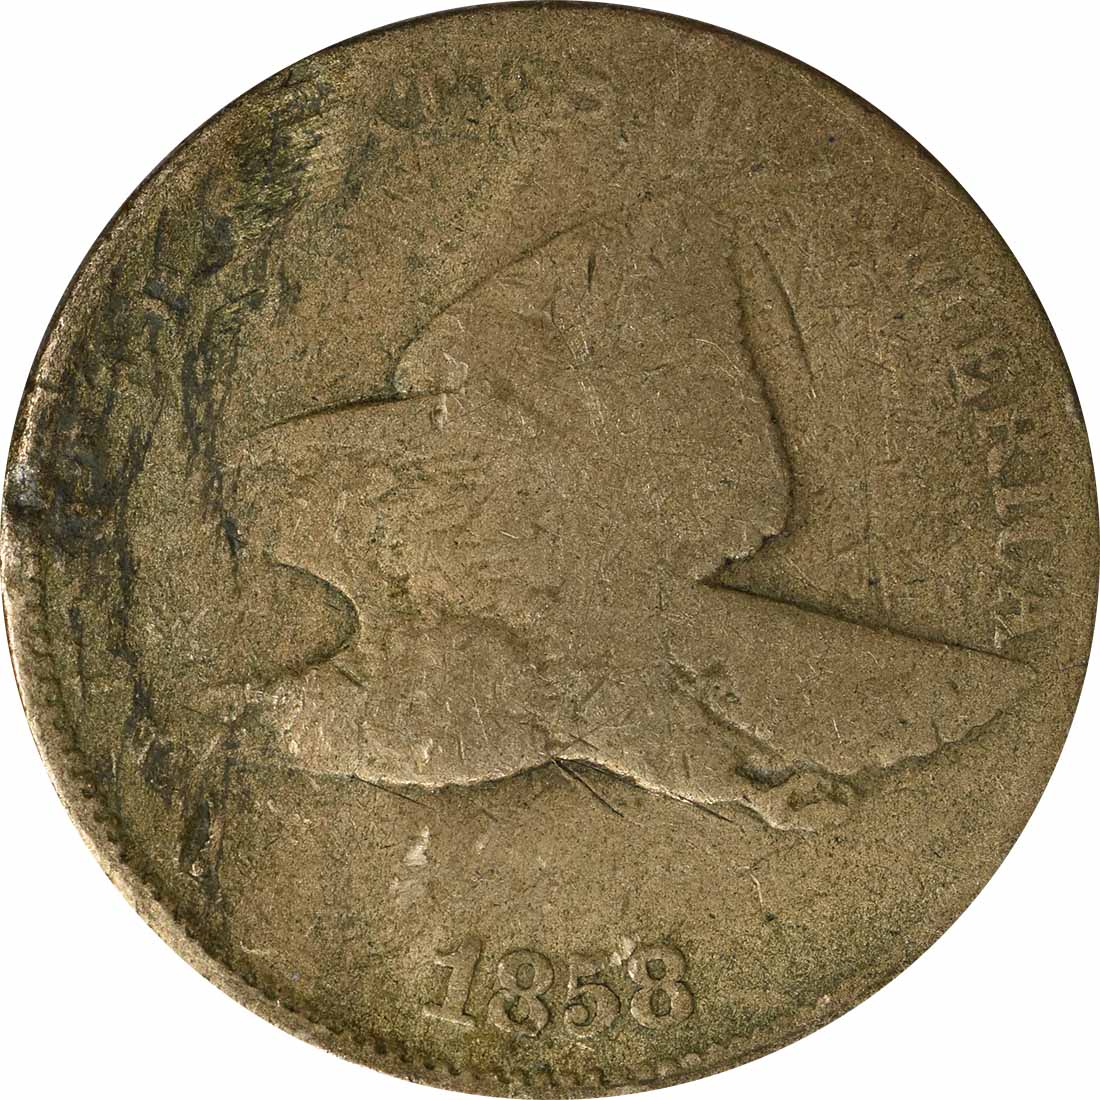 1858 Flying Eagle Cent Large Letters AG Uncertified